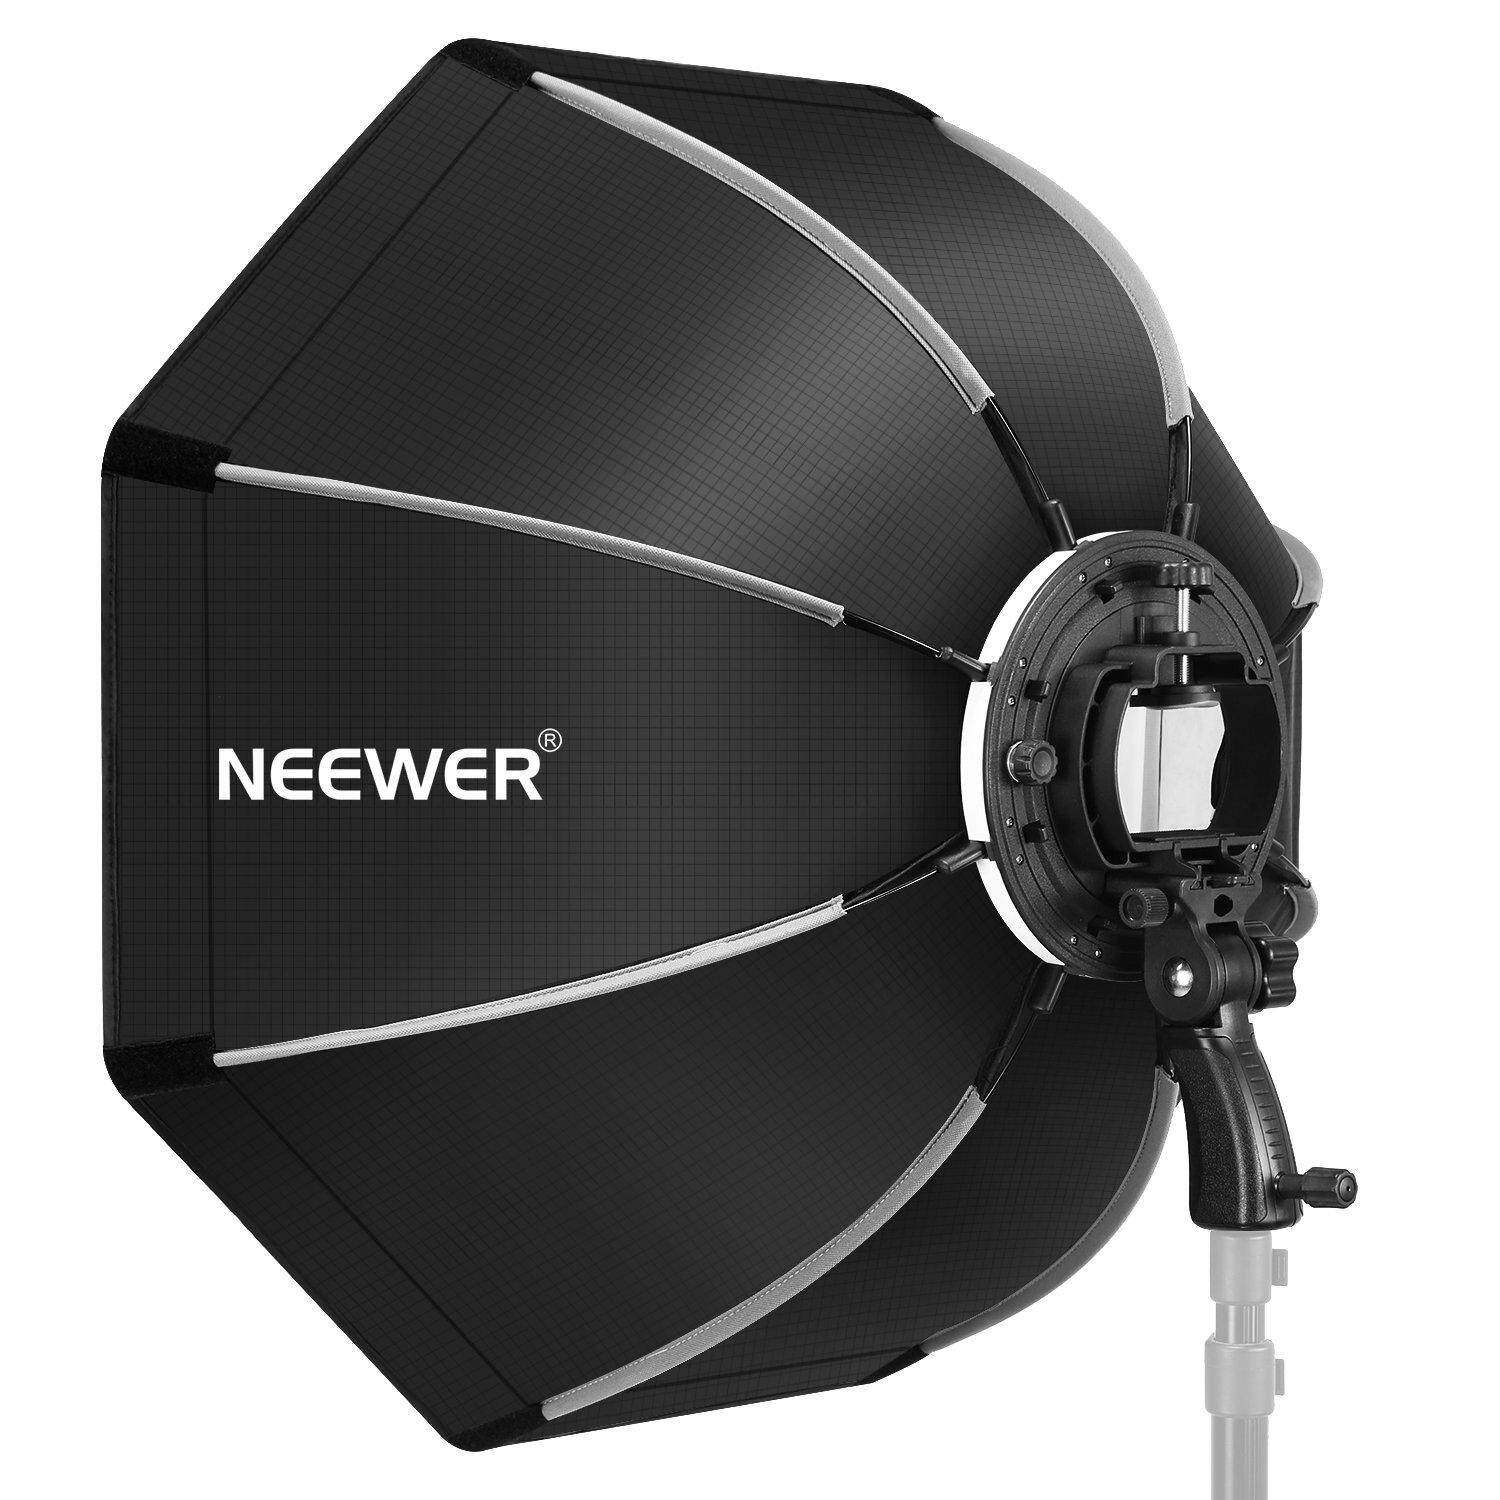 Neewer 26 inches 65 centimeters Octagonal Softbox with S-type Bracket  Mount 31369ea51